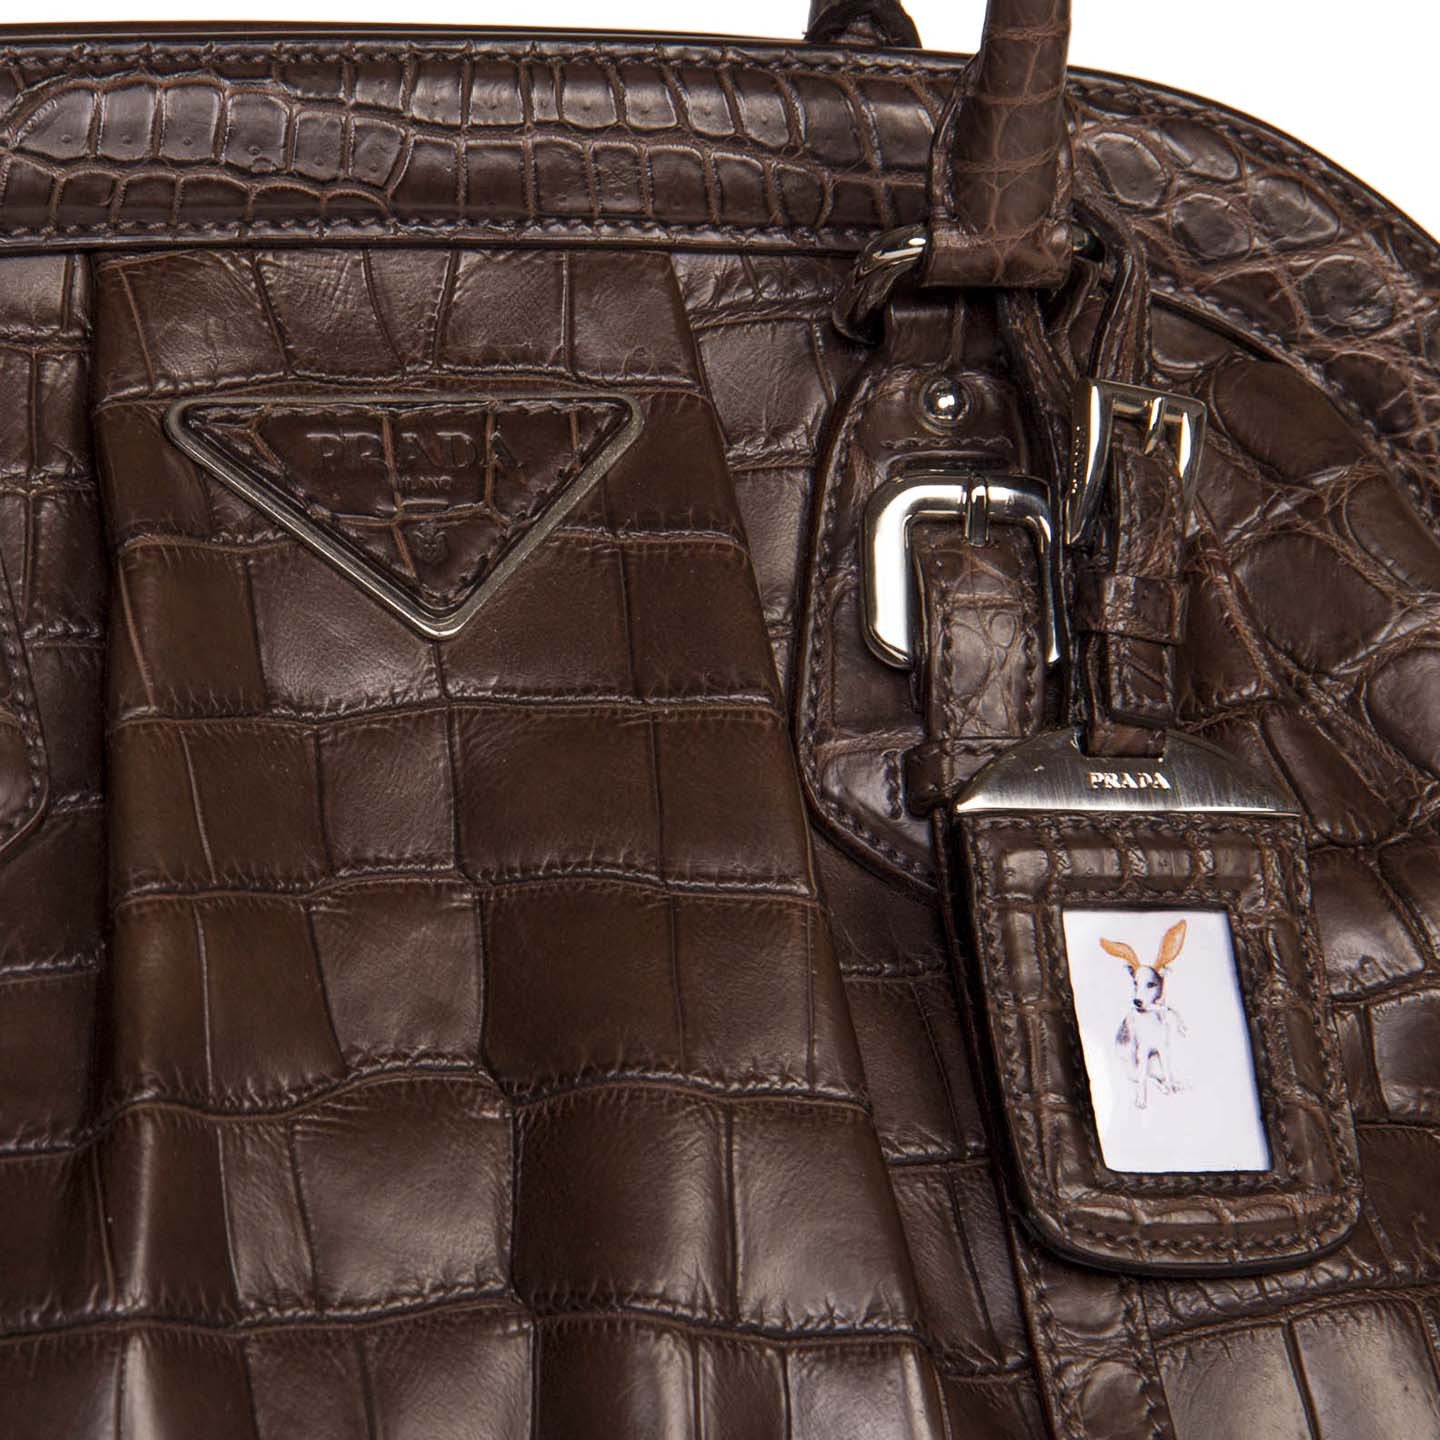 c4bbca7e71 Find an authentic preowned Prada Brown Crocodile Vintage Style Bag at  BunnyJack